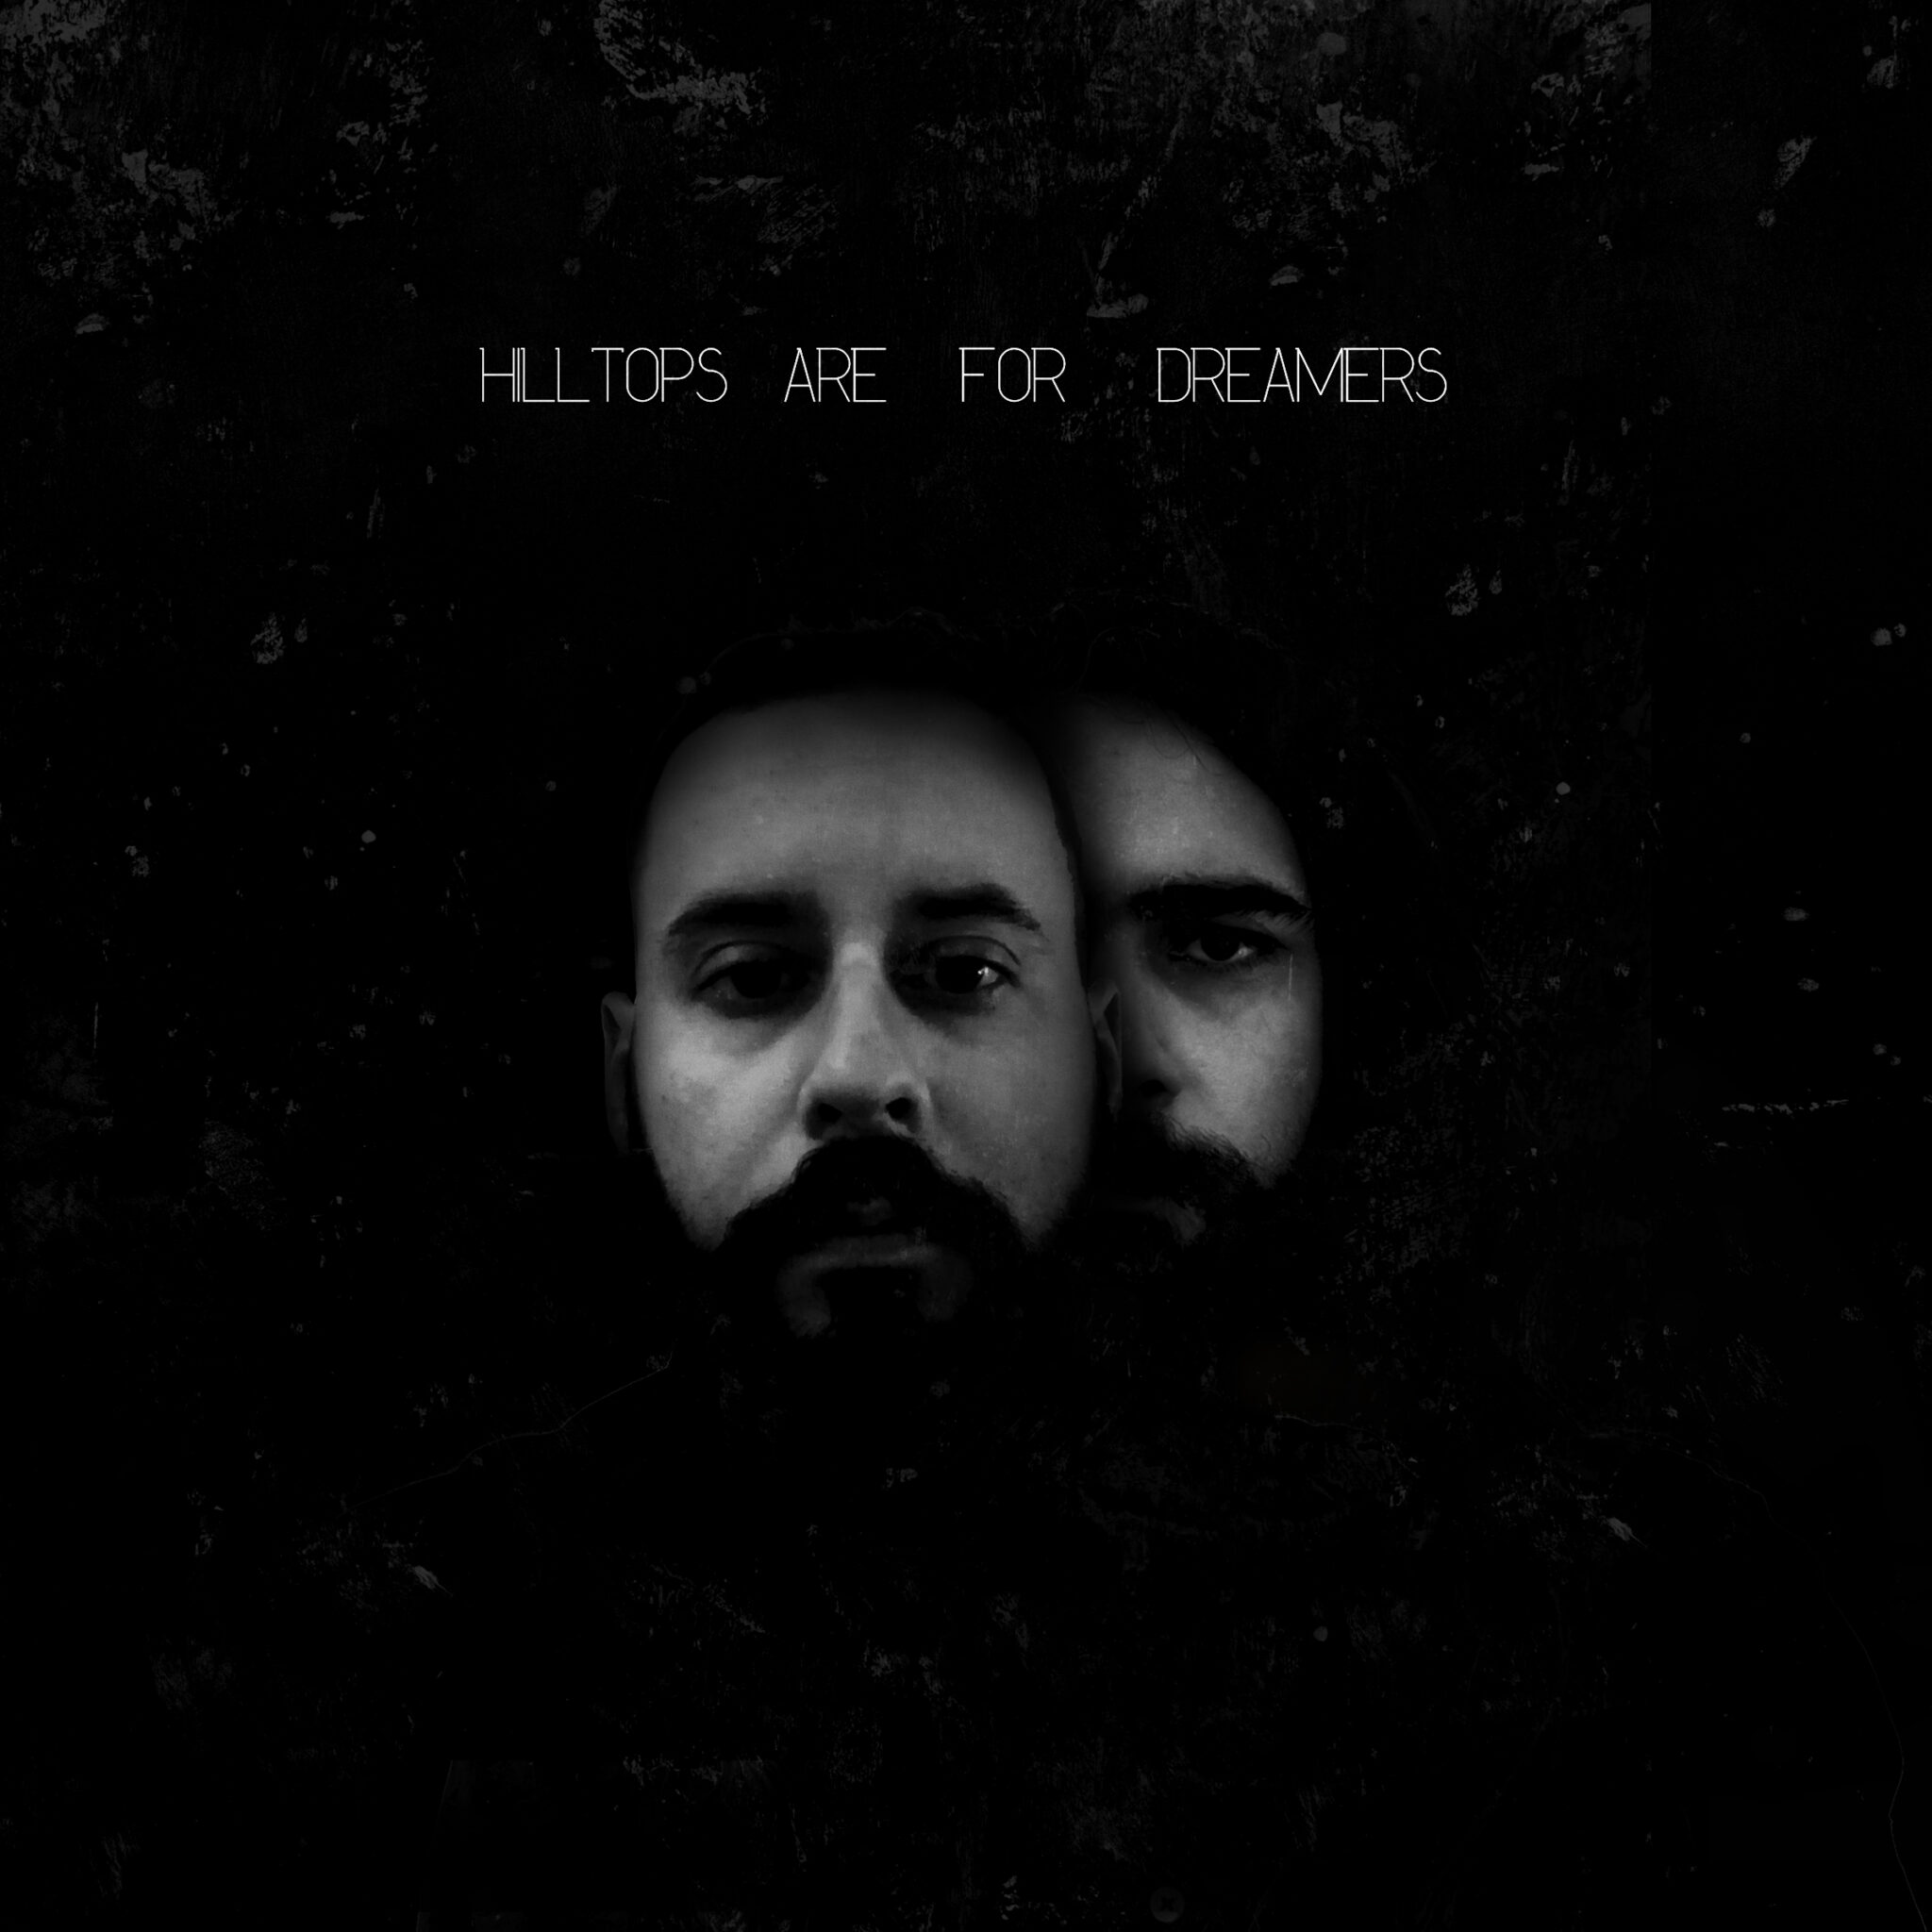 Hilltops Are For Dreamers